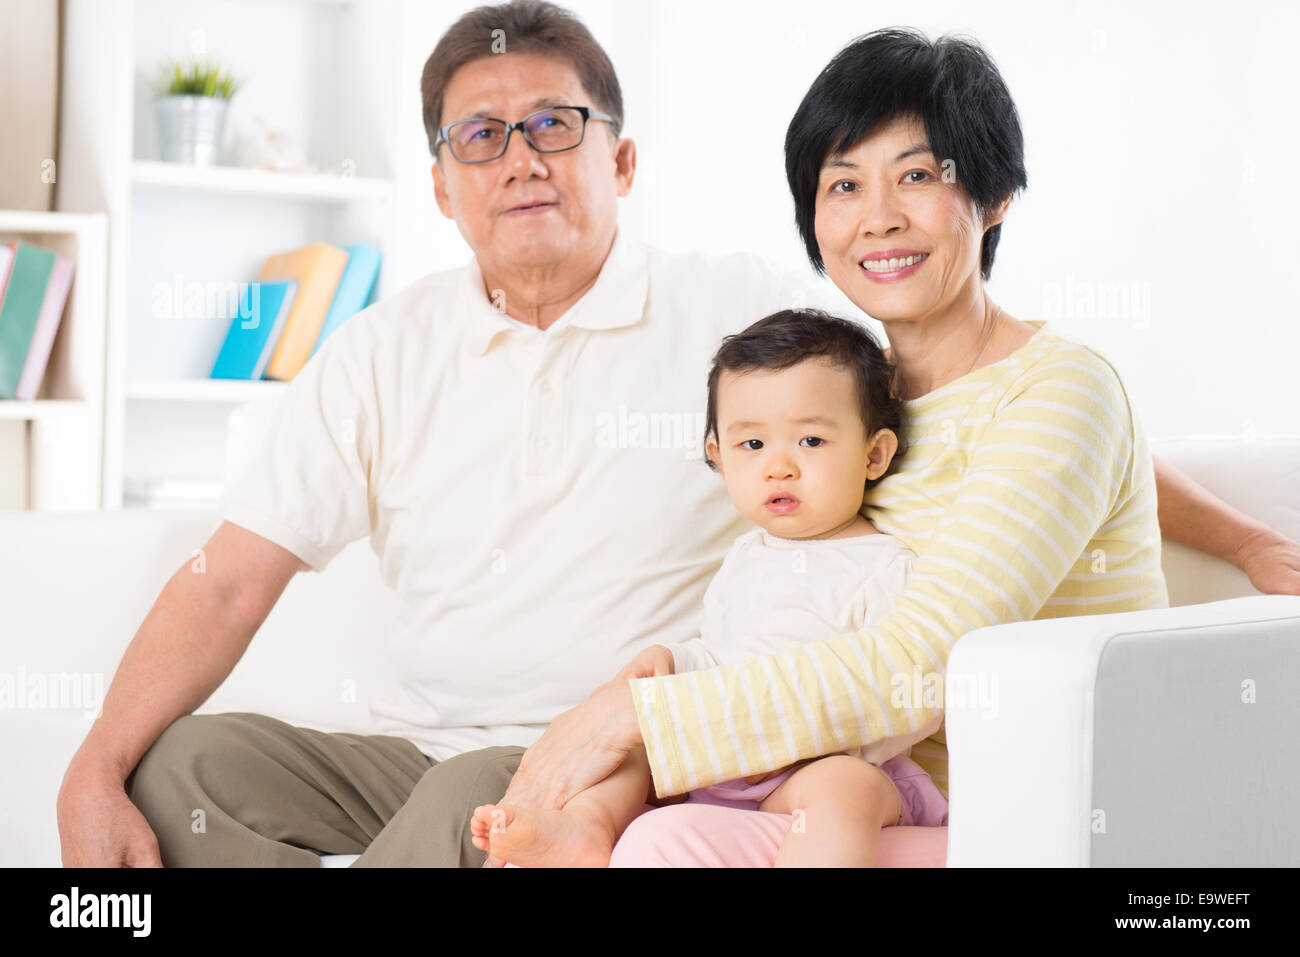 asian family portrait relaxing at home grandparents and grandchild